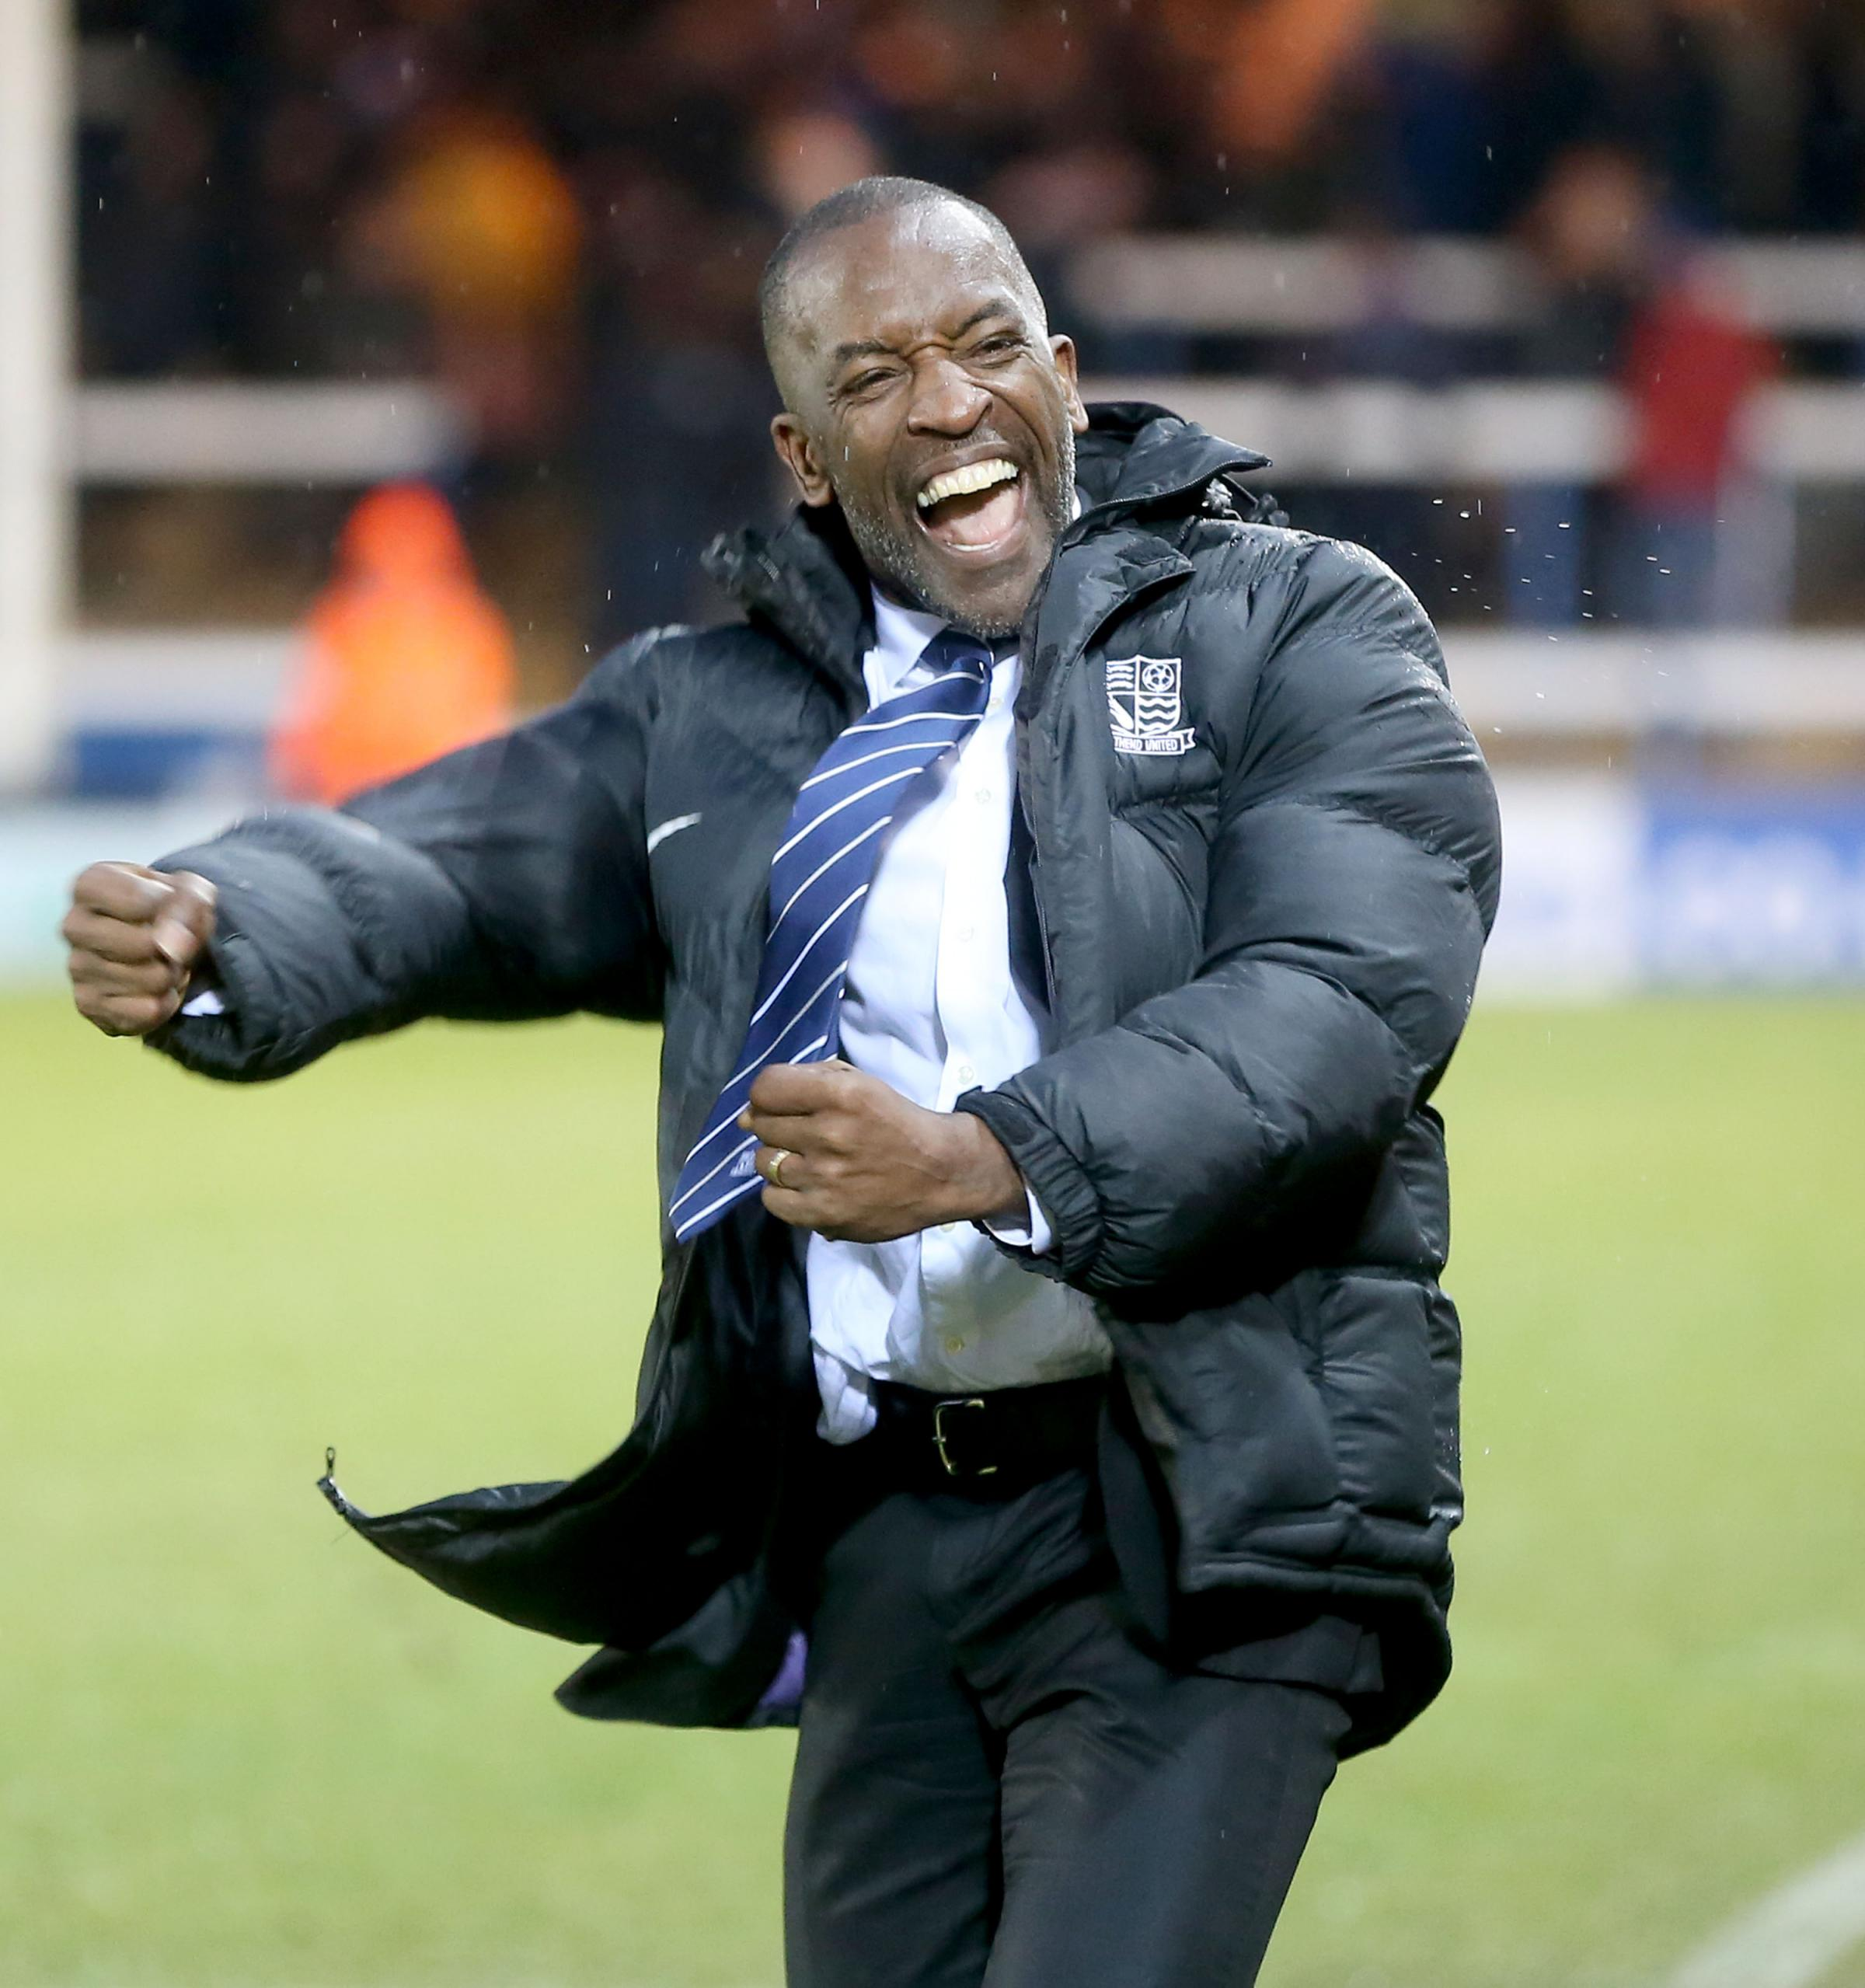 Bidding for a third straight win - Southend United manager Chris Powell